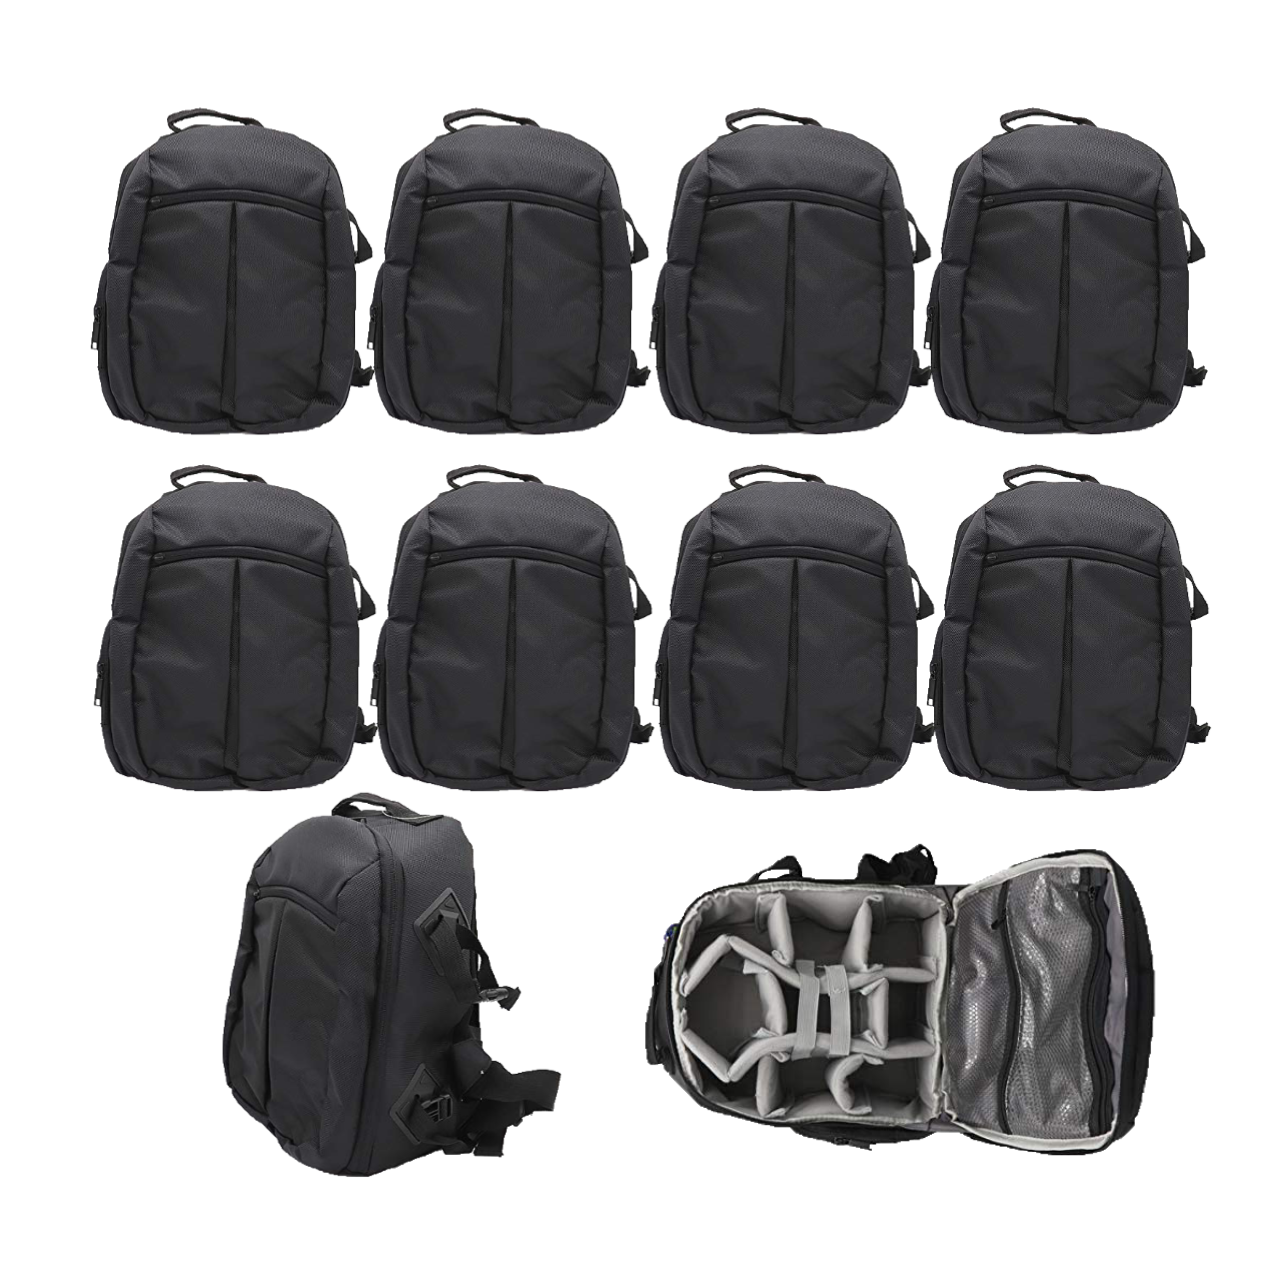 Solibag Slr Camera Travel Backpack Waterproof Carry Bag For Canon, Nikon, Sony, Pentax Black Shoulder Case -7001 Pack Of 10Pcs Camera Bags Camera Bags